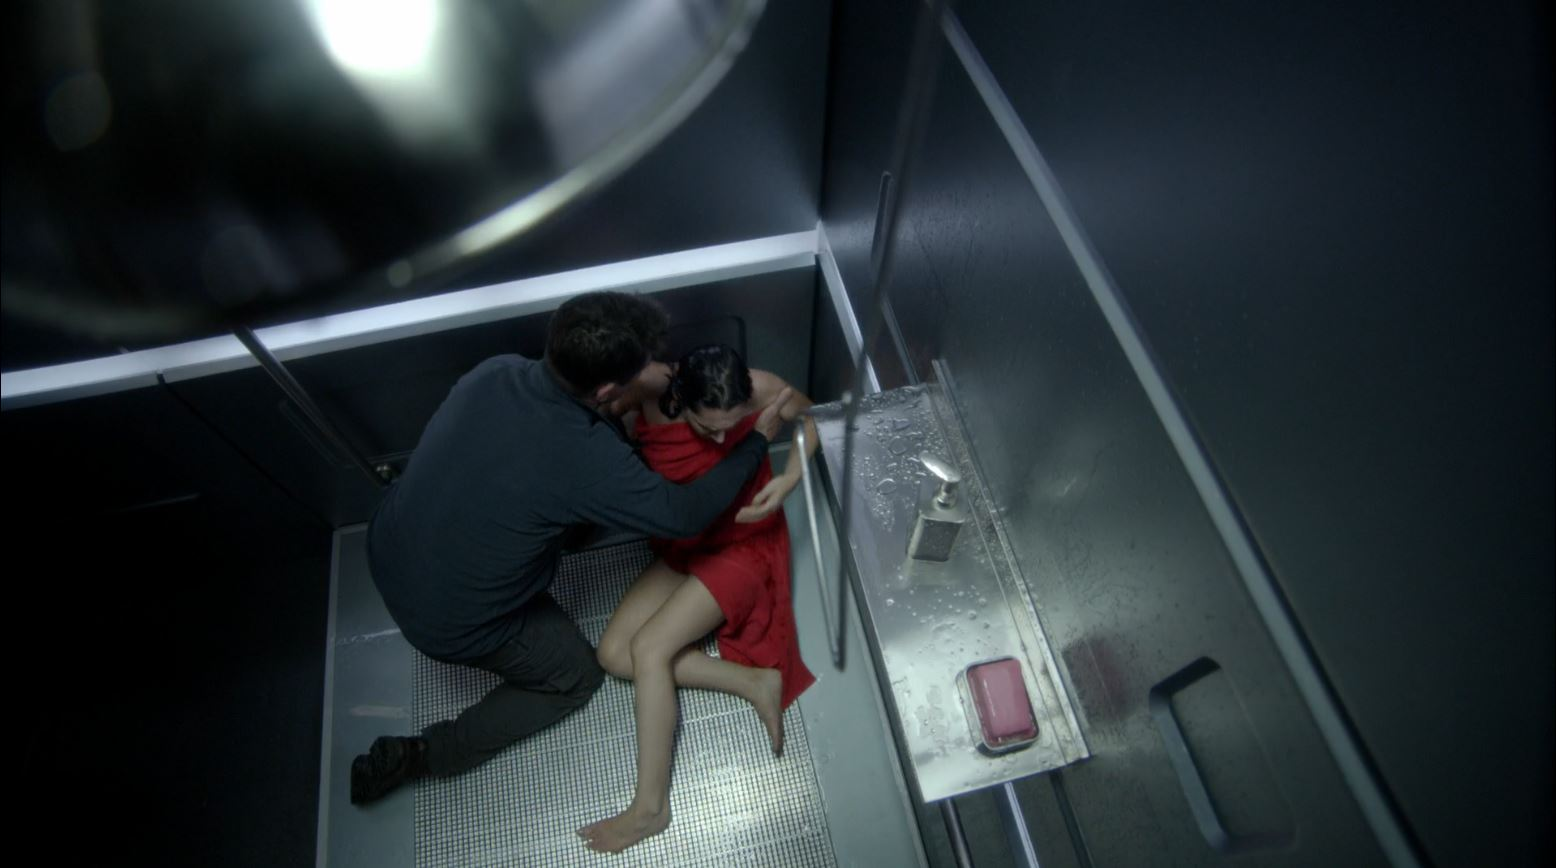 Helix - 274 - Alan (Billy Campbell) finds Julia (Kyra Zagorsky) in the shower room